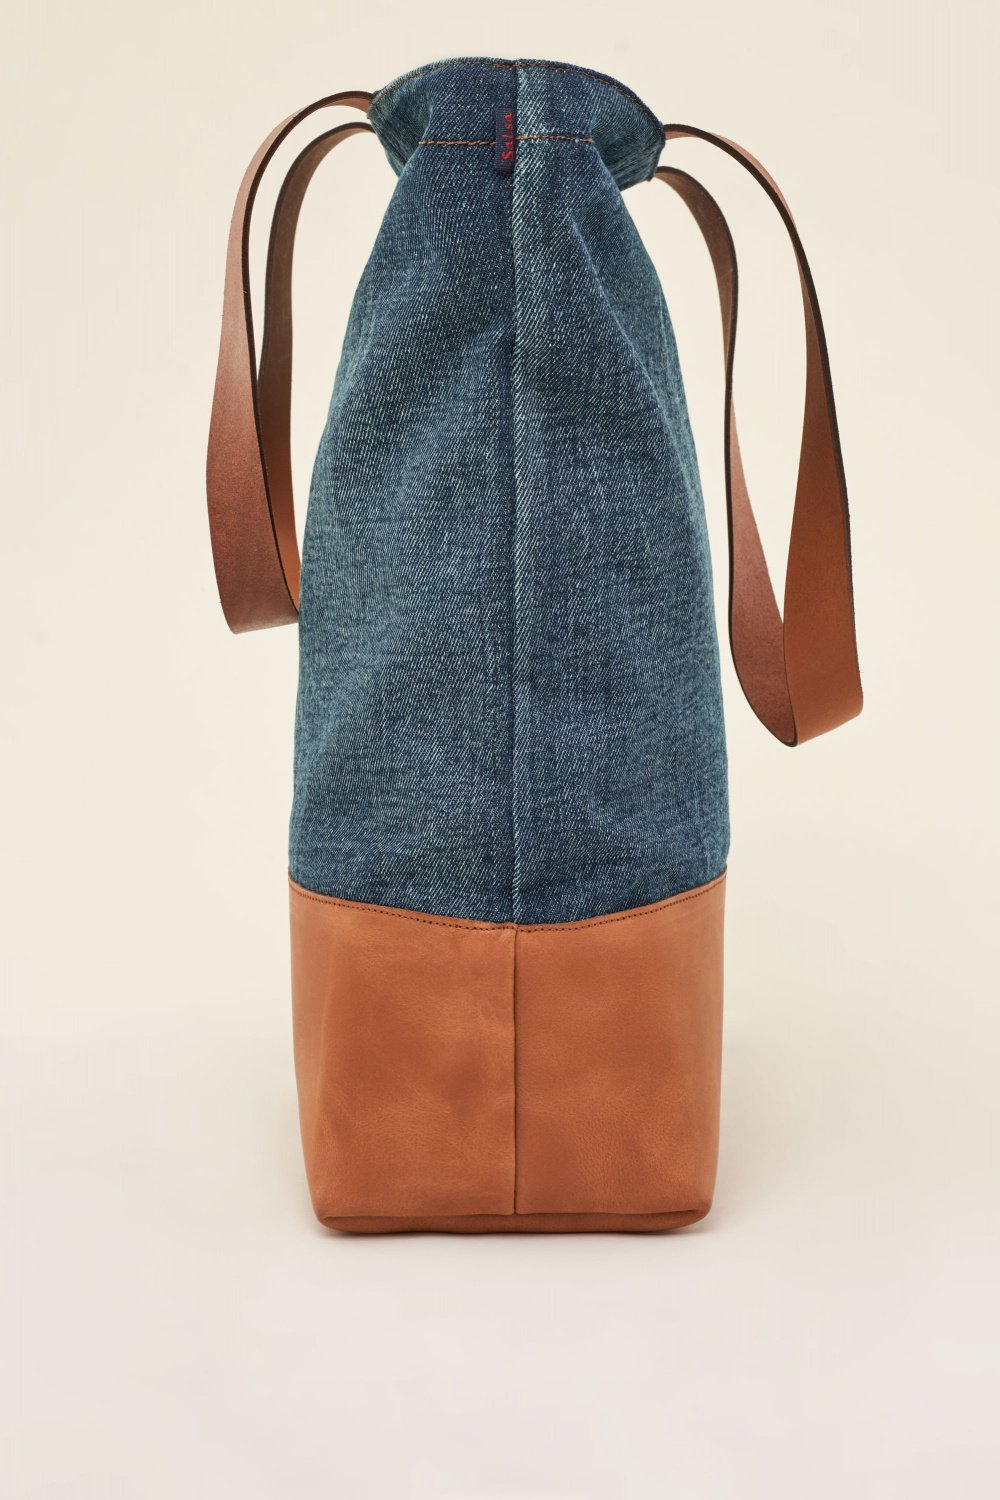 Handbag in organic denim and leather - Salsa